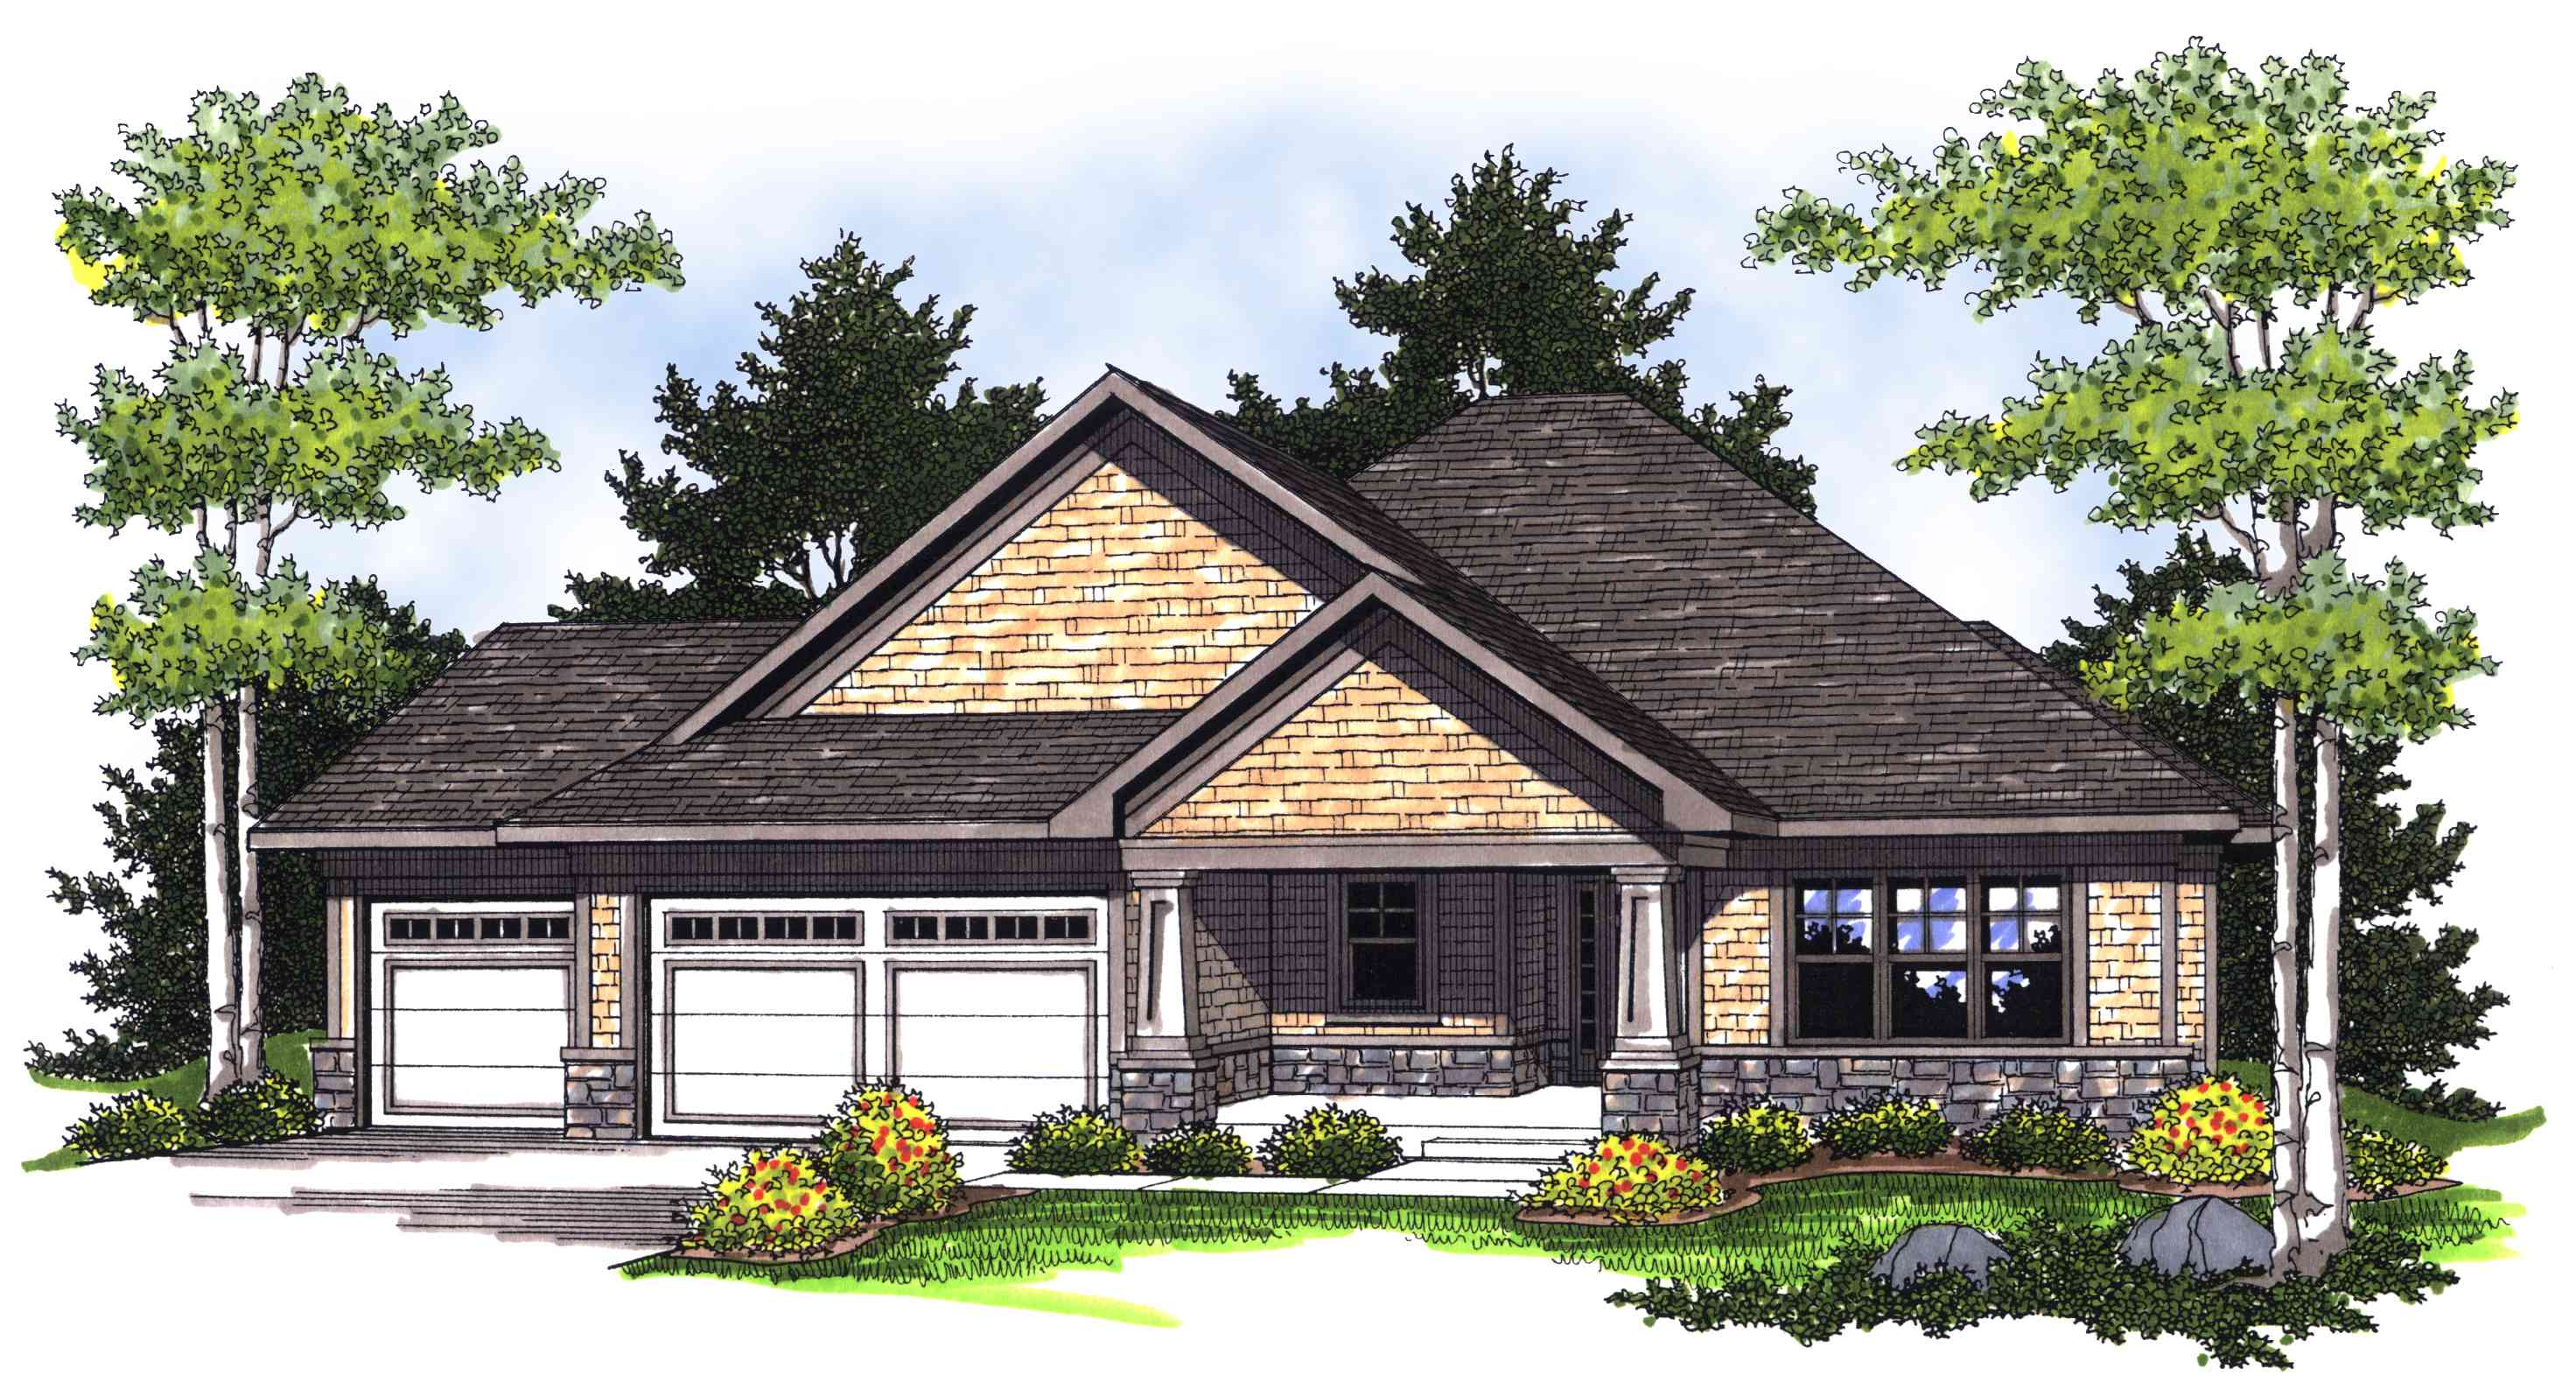 Ranch with Craftsman Style Detail - 89226AH | Architectural Designs - House Plans